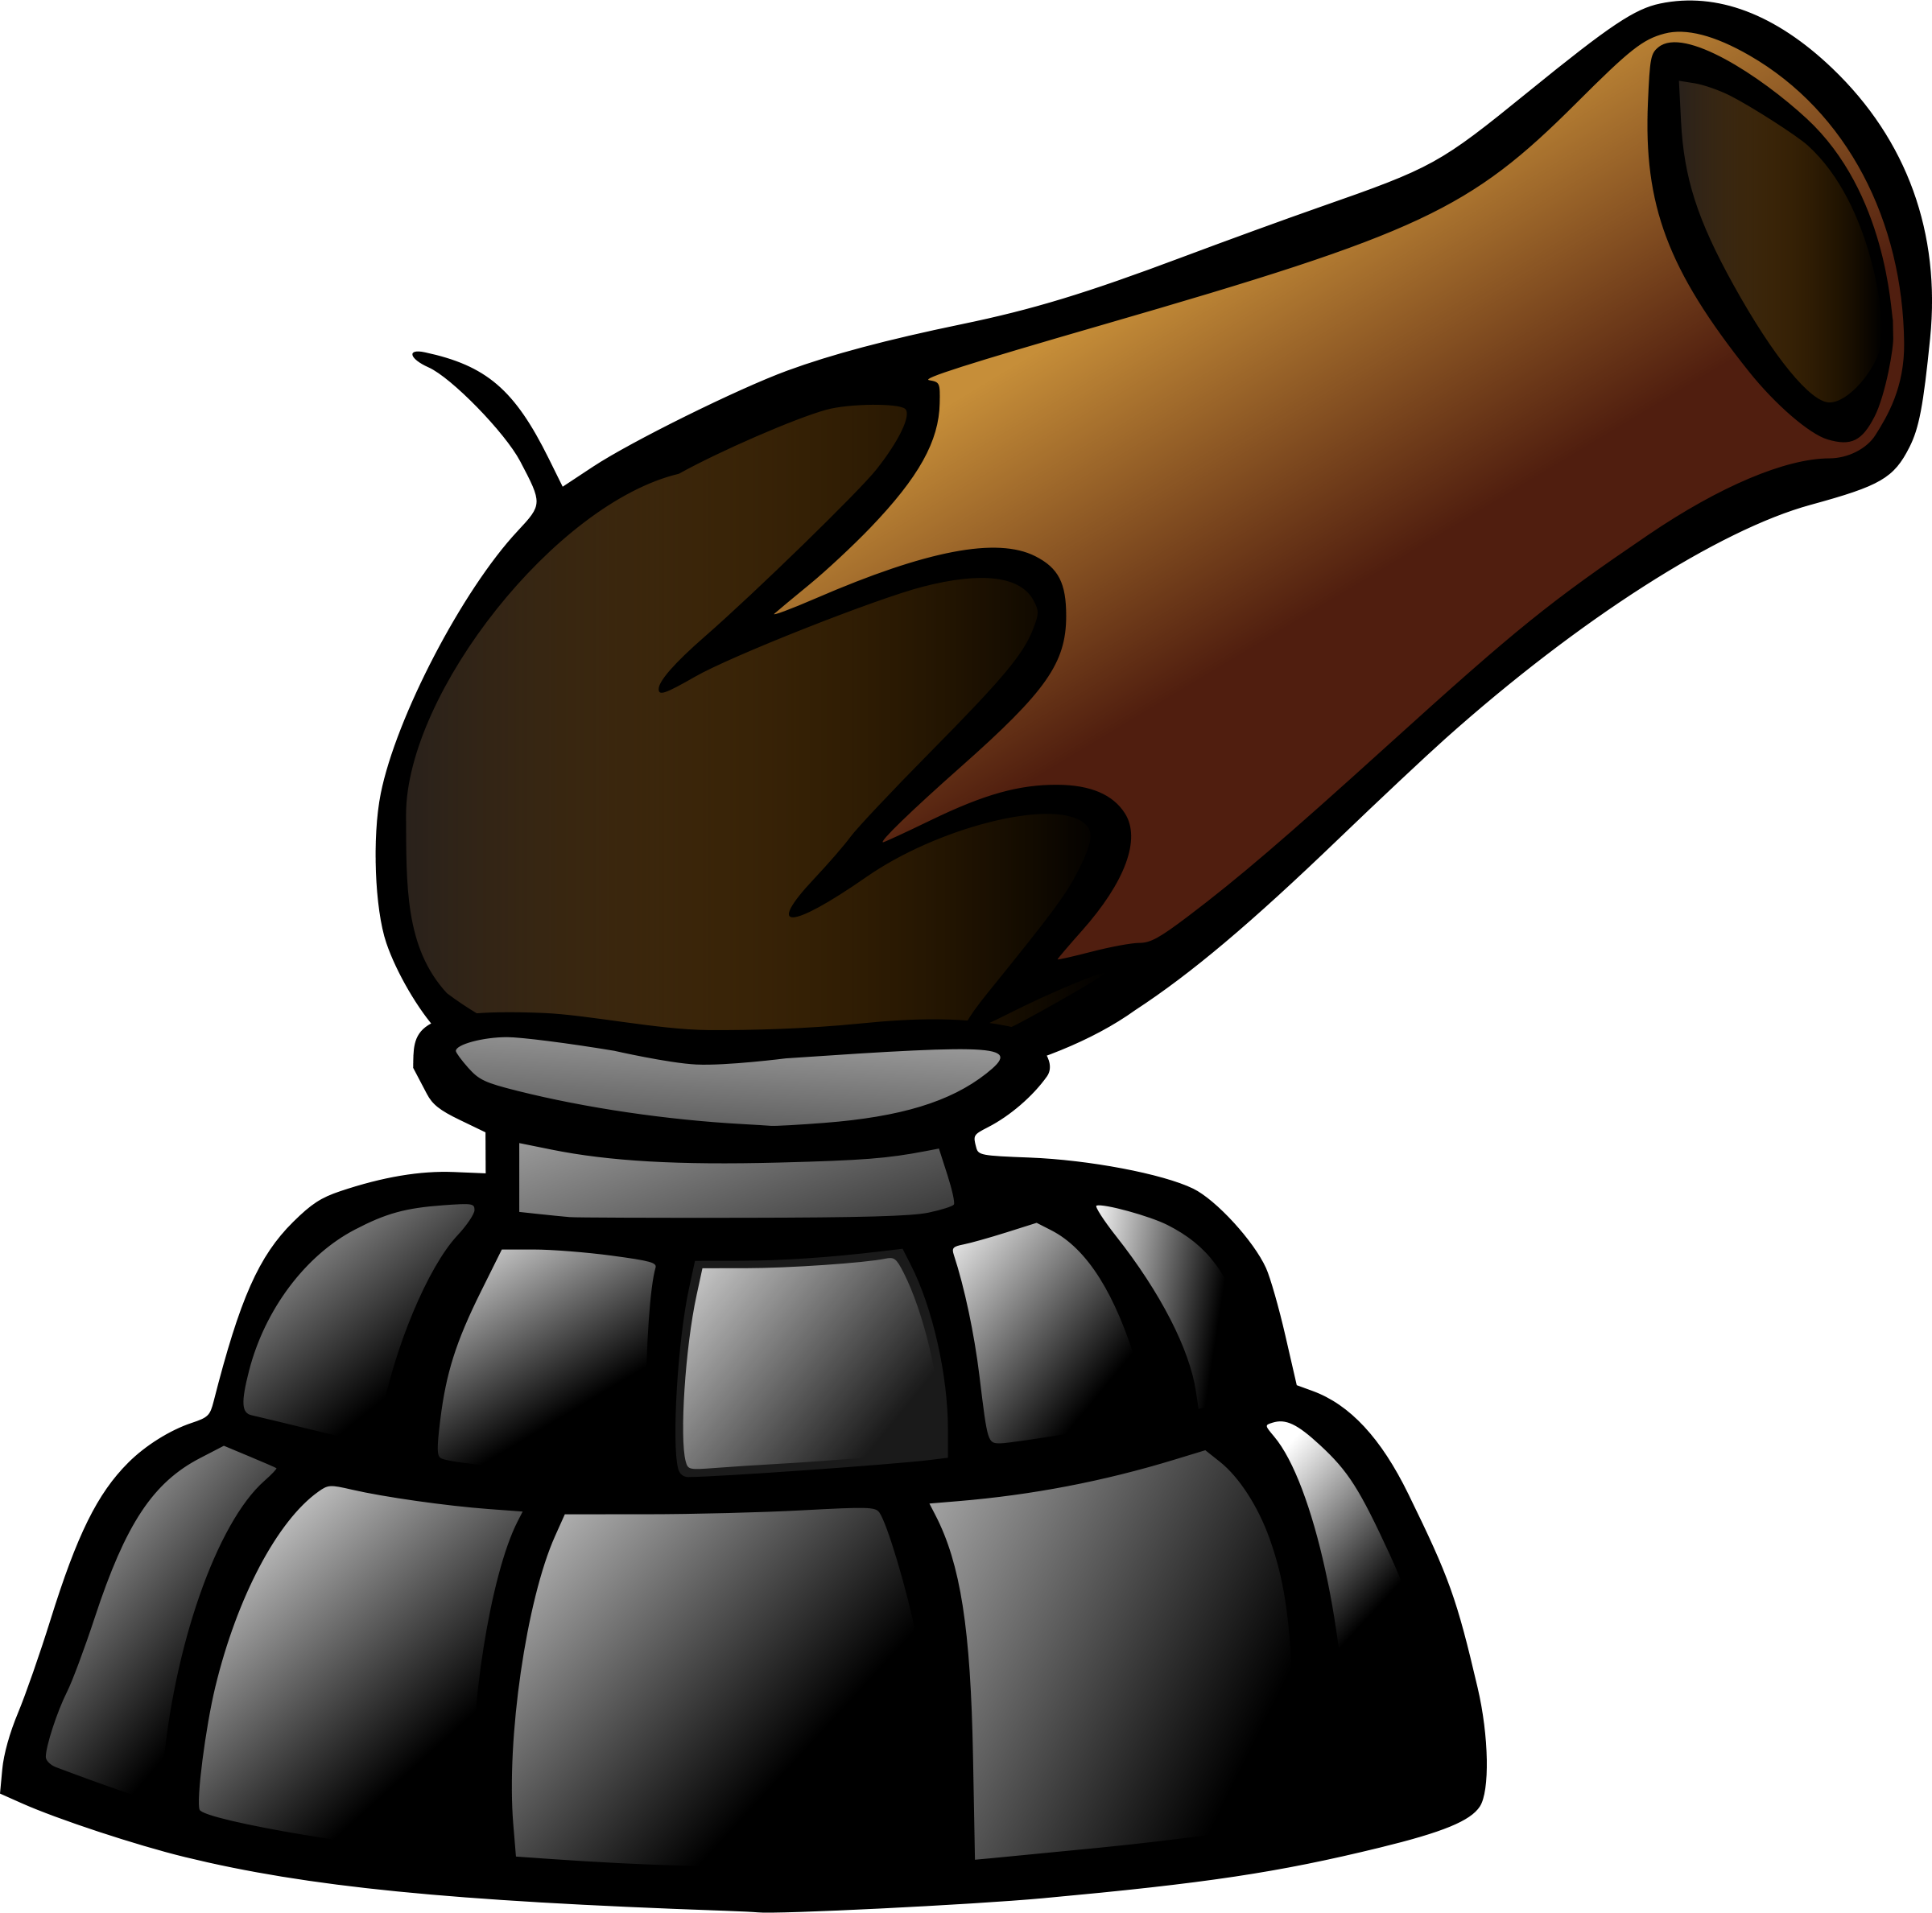 Canon drawing cannon. Free ball cliparts download